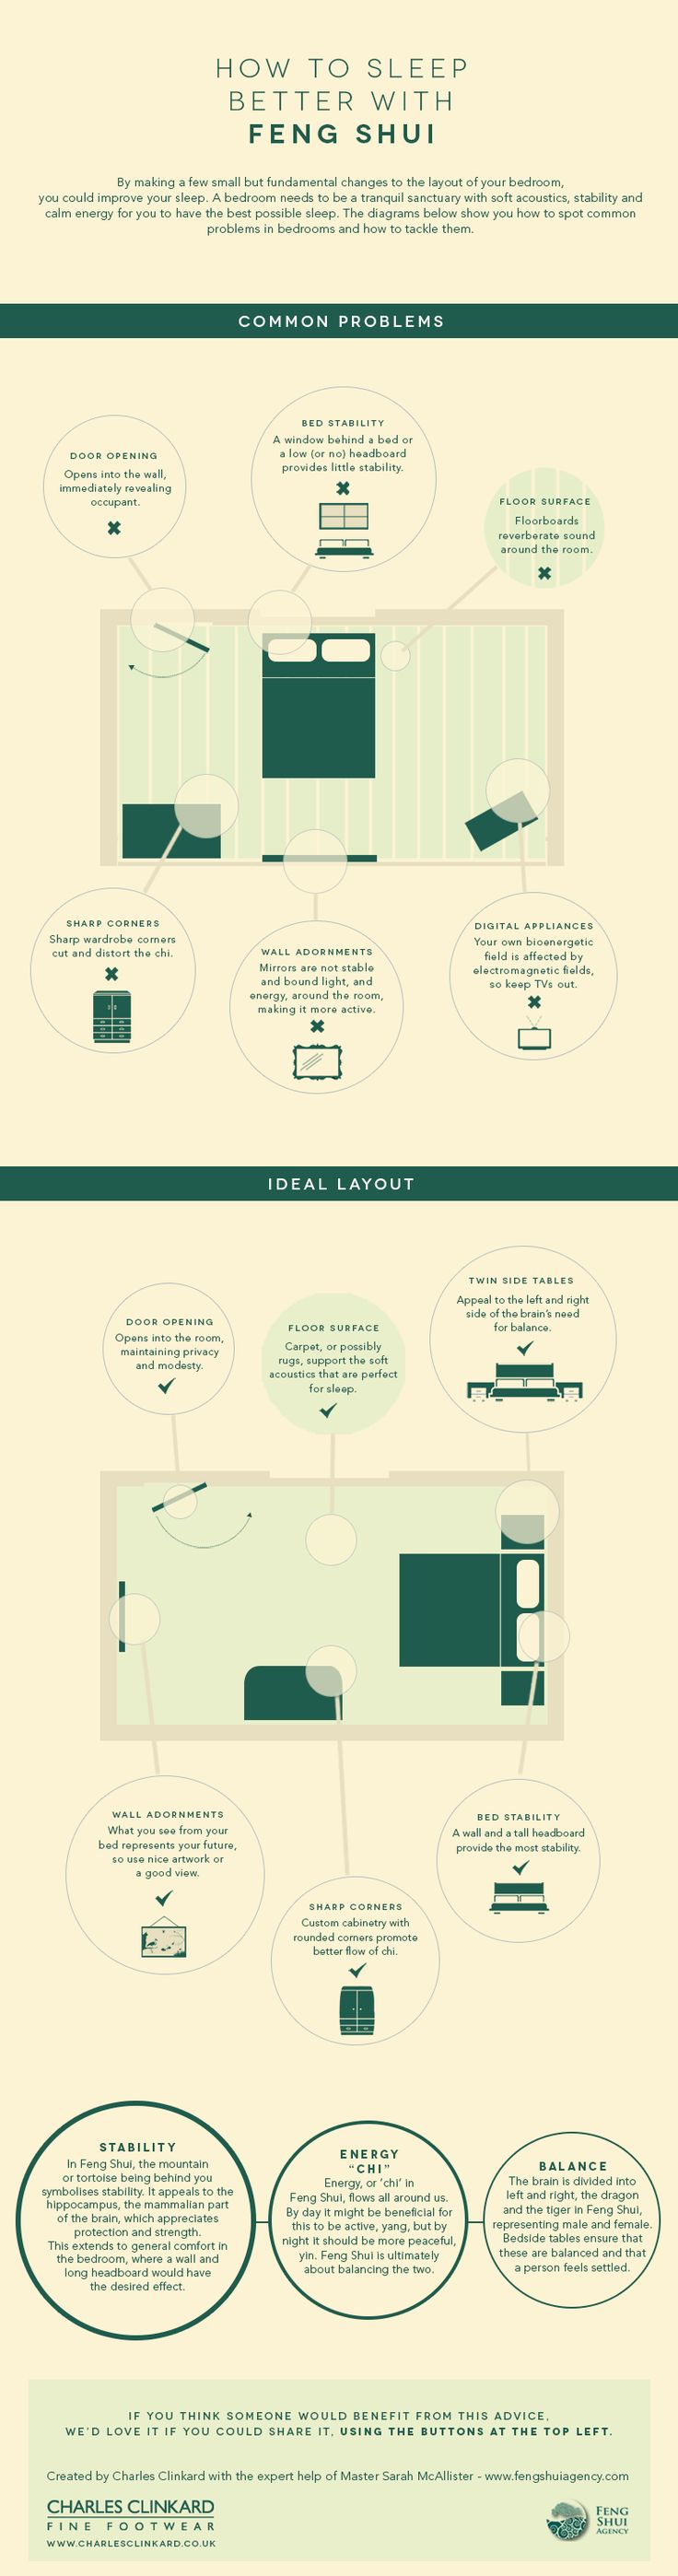 25+ best ideas about Feng shui on Pinterest  Feng shu ~ 032130_Dorm Room Feng Shui Ideas